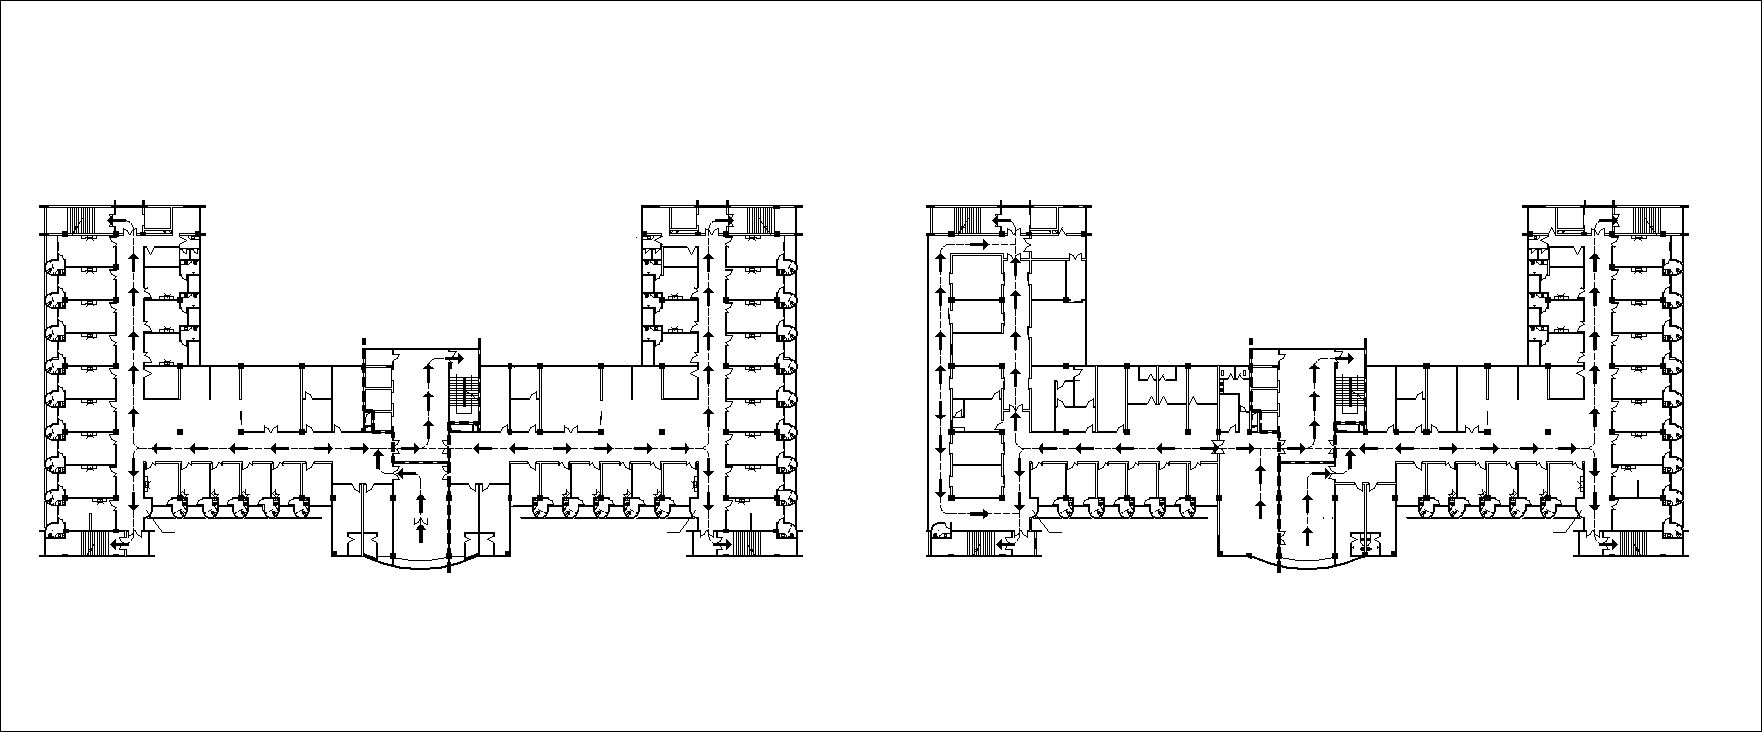 hospital design drawings u3011 u2605